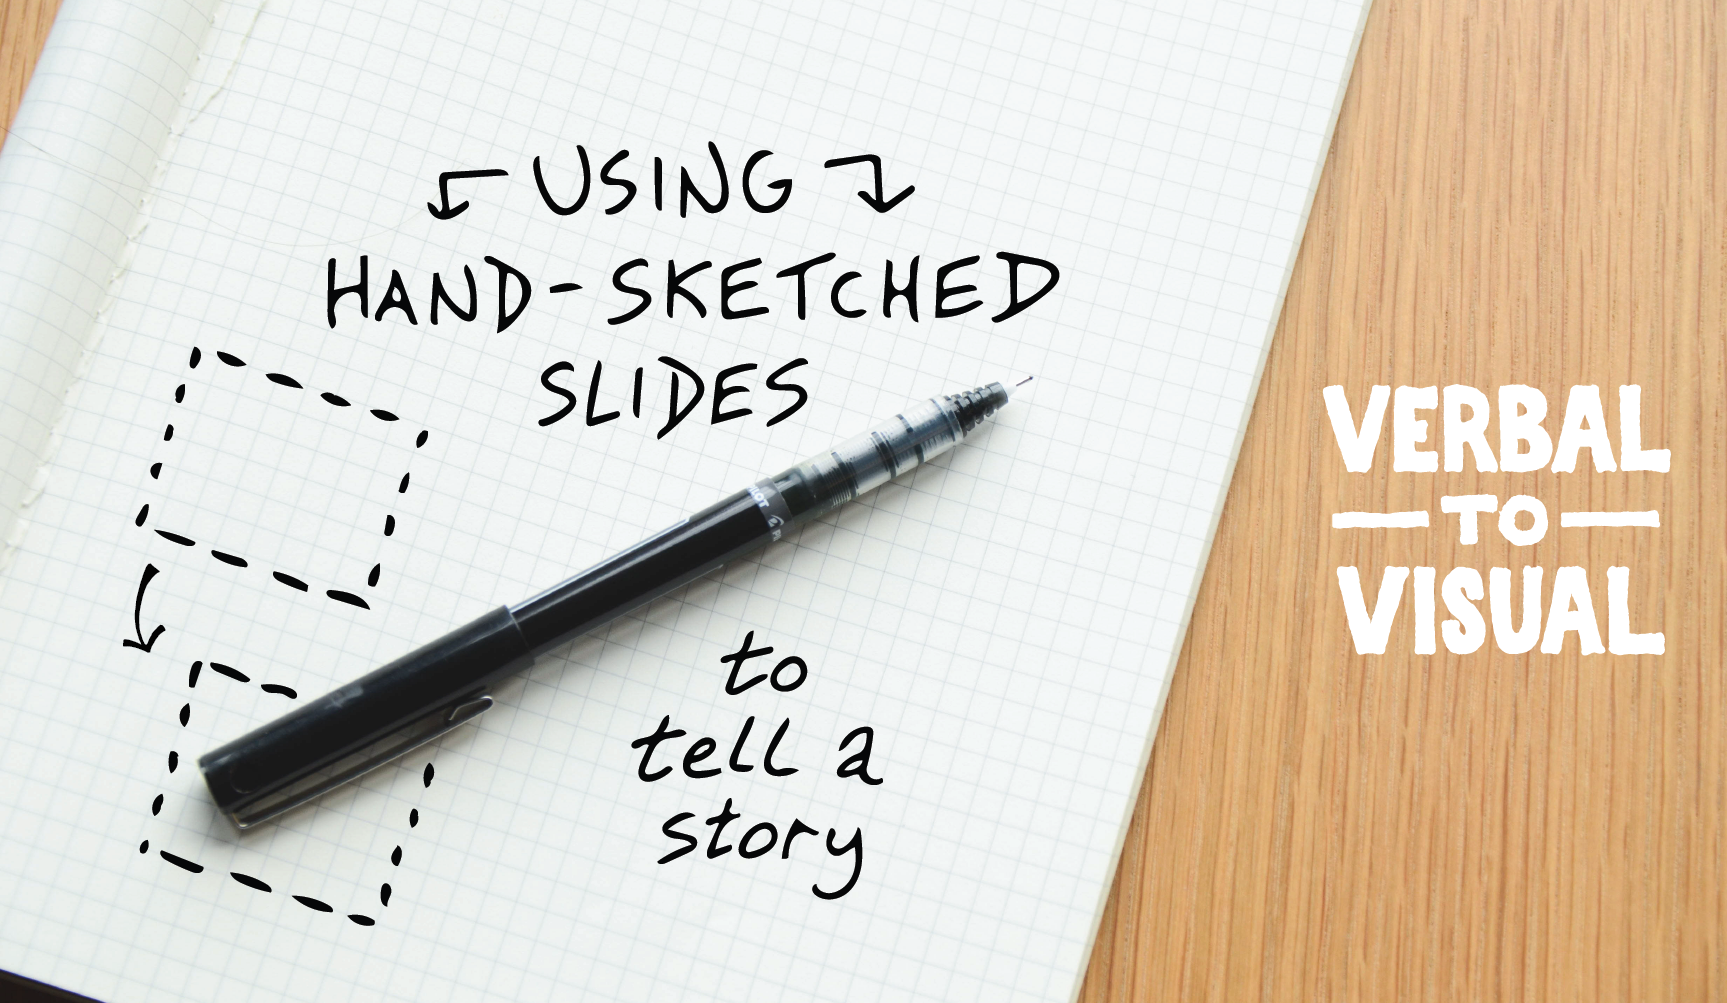 Using Hand-Sketched Slides To Tell A Story - Verbal To Visual - Doug Neill - sketchnotes, doodling, visual note-taking, presentation, talk, speech, slides